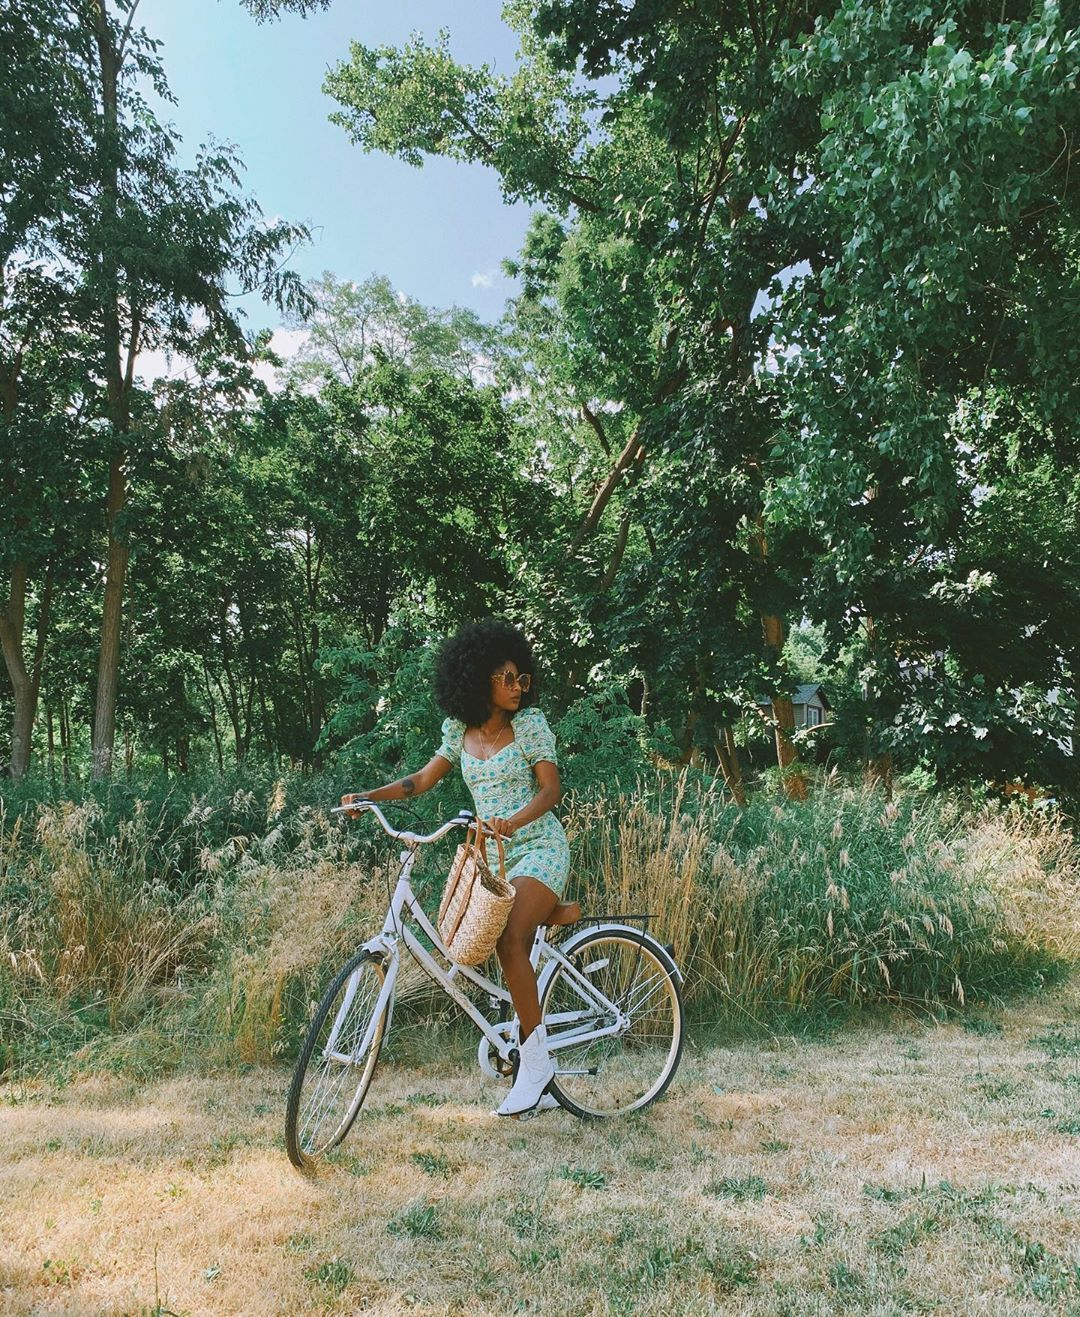 Oriane Adjibi on Instagram  On a biking day in Beacon 🚲 mfbgoesupstate - Por que Precisamos Falar sobre Sustentabilidade?